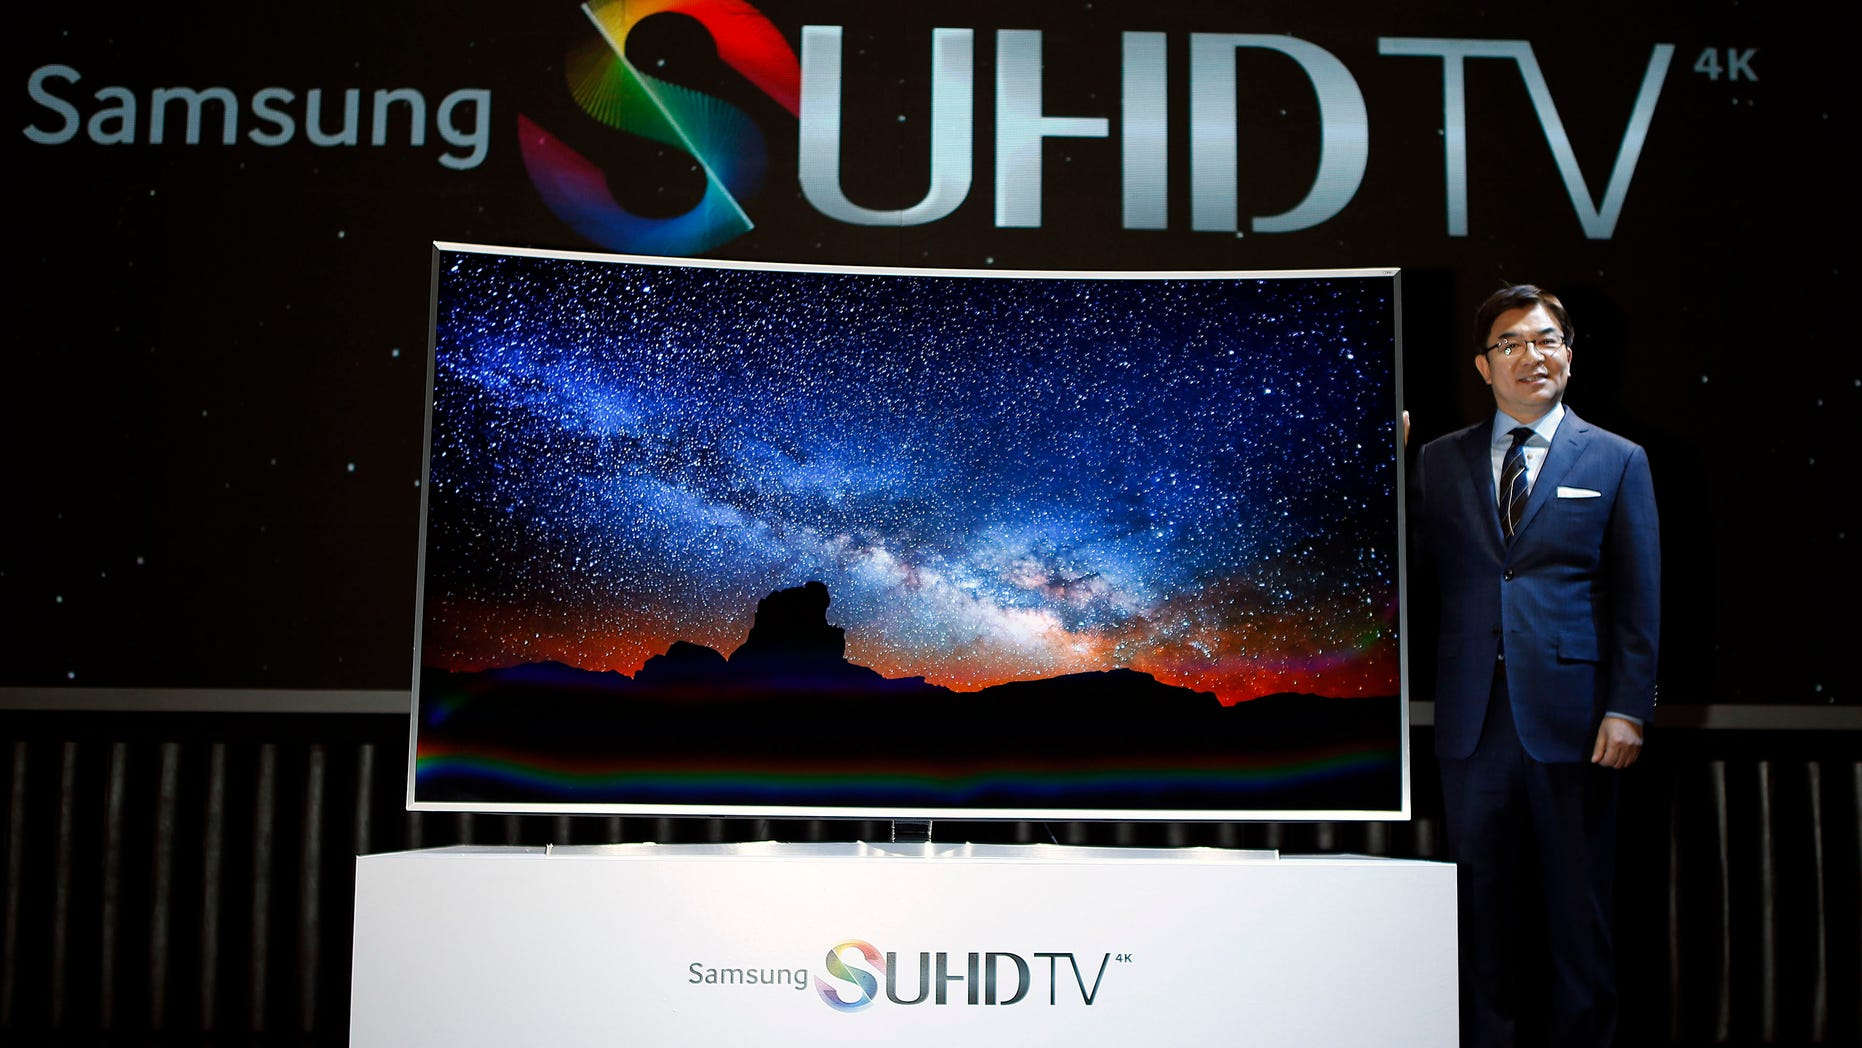 Kim Hyun-seok, head of Samsung Electronics television division, poses for photographs with a Samsung Electronics smart TV during its launch event in Seoul February 5, 2015.